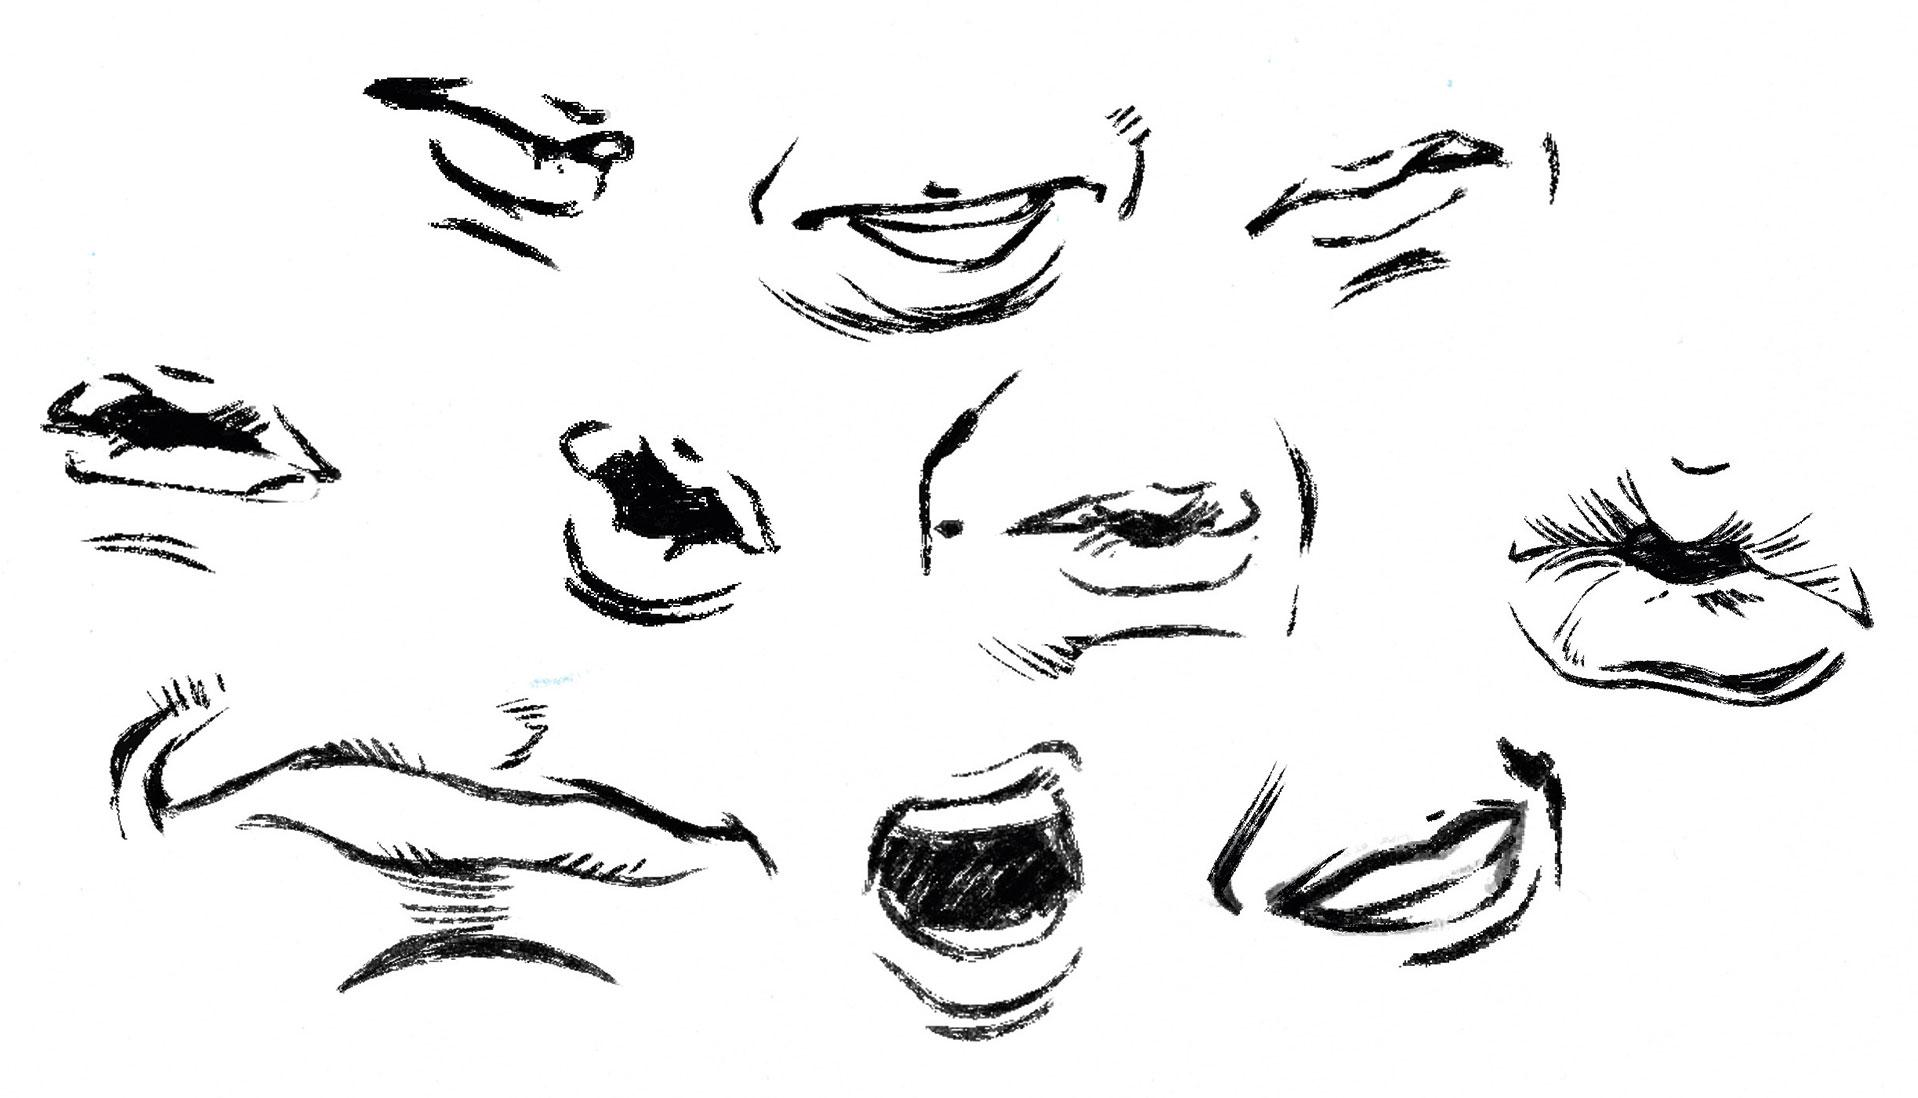 Several drawings of lips in different expressions